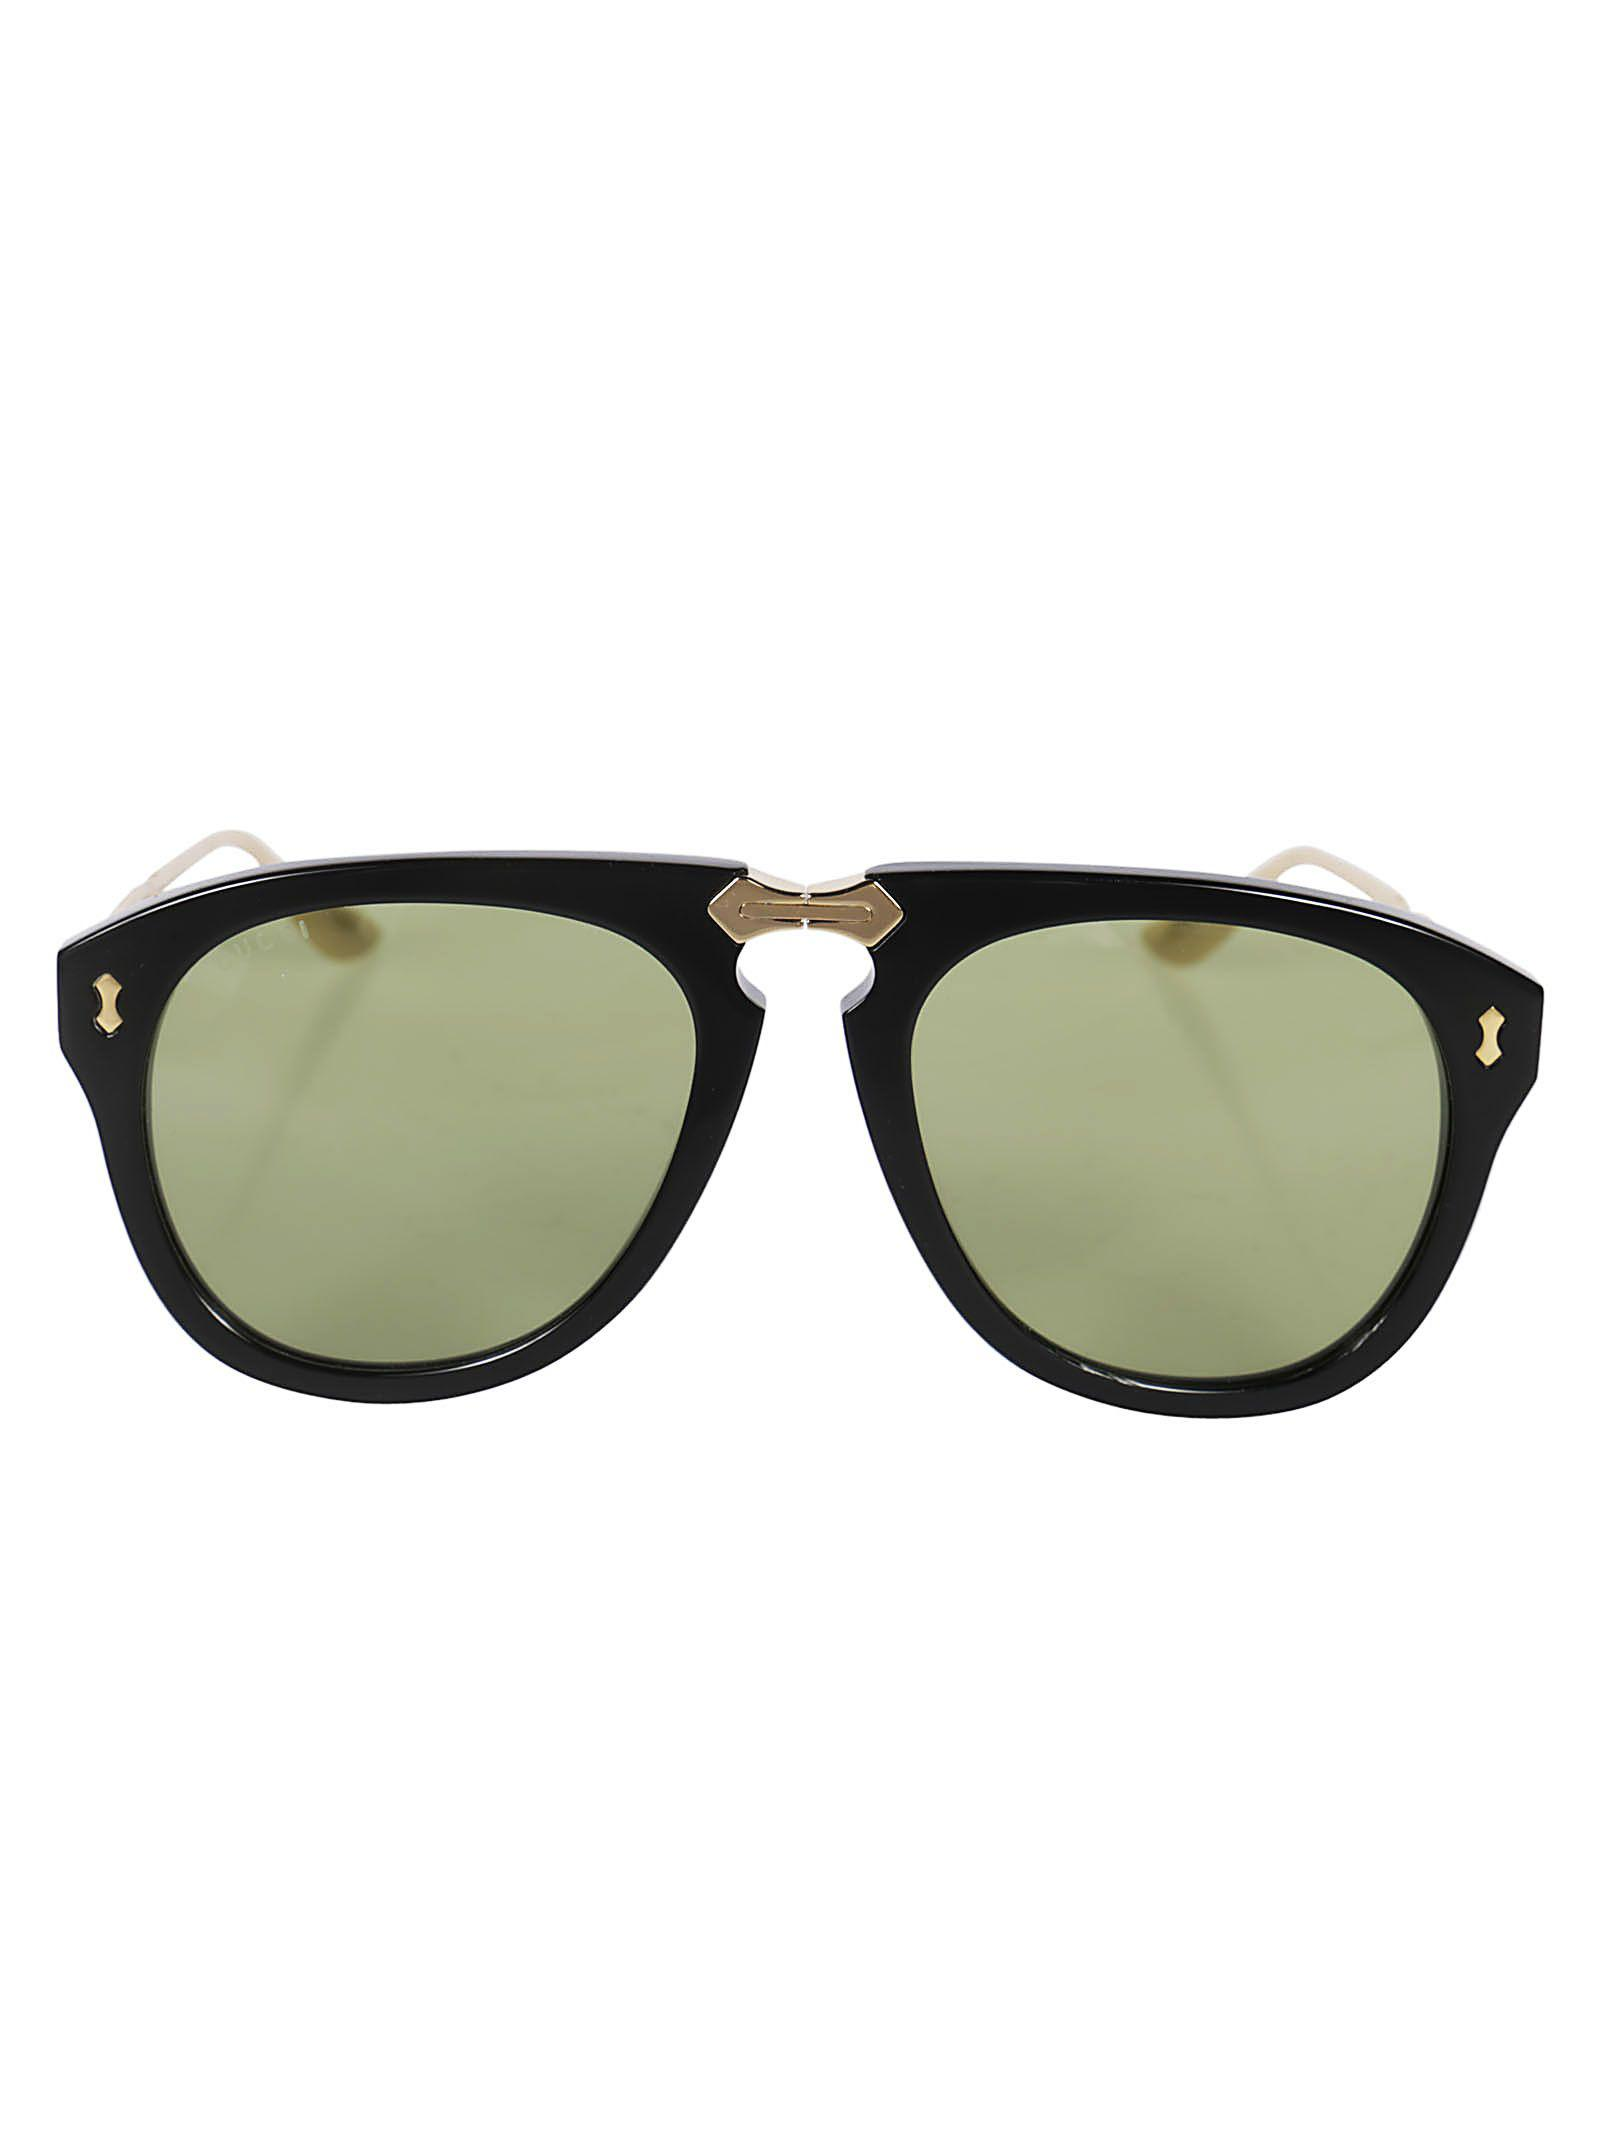 34dcd3f0f4a15 Gucci Tinted Aviator Sunglasses In Black Gold